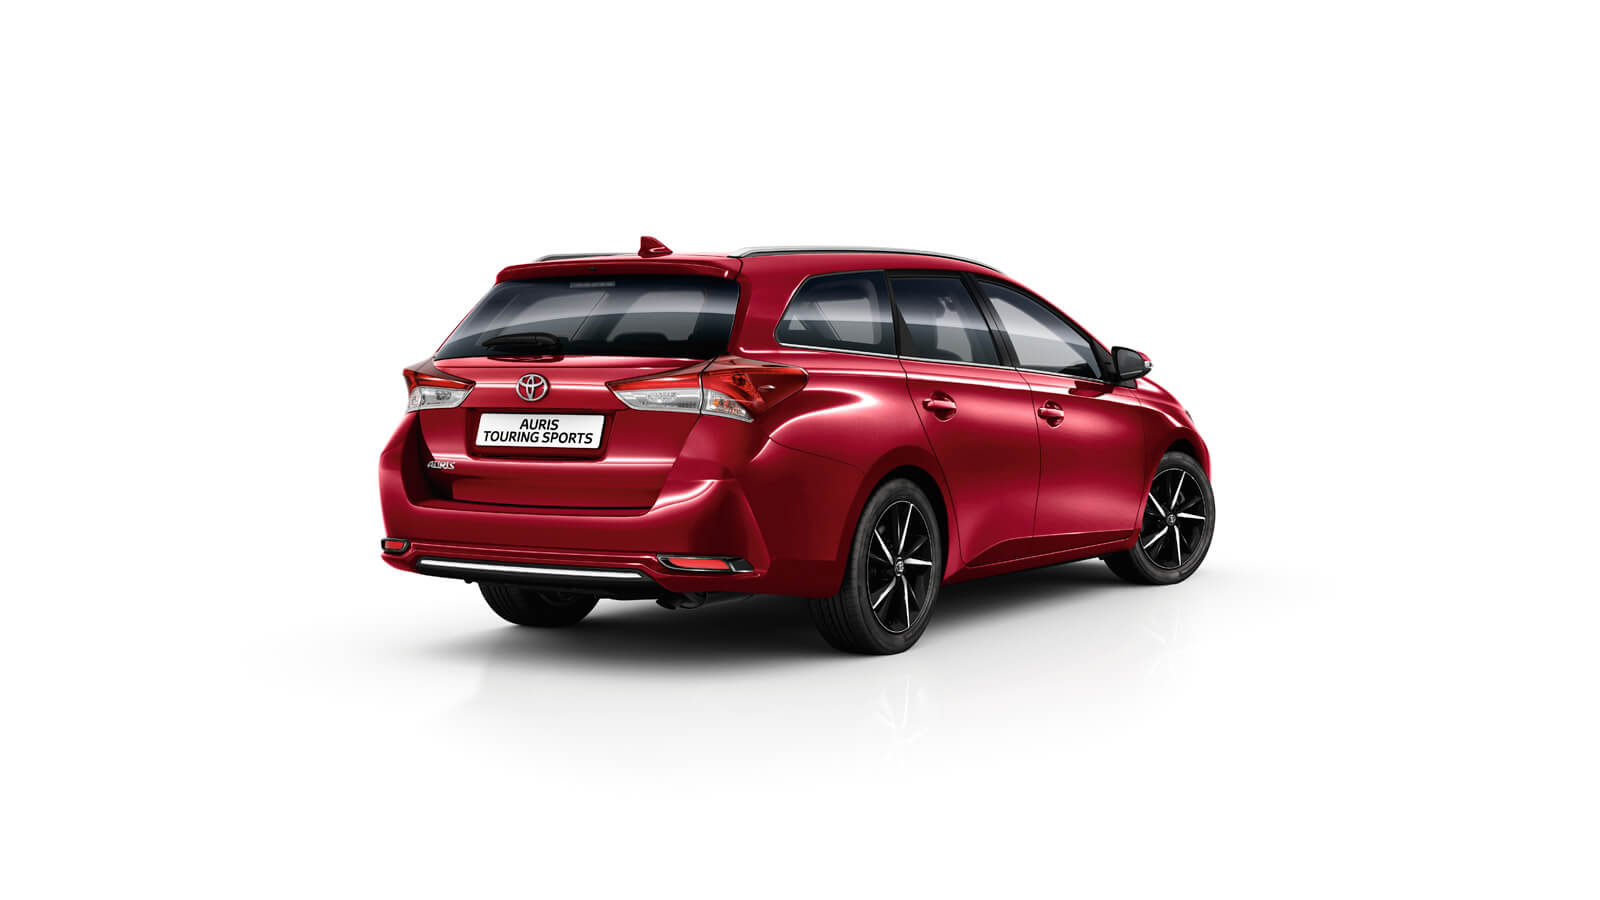 auris touring sports models features burrows barnsley